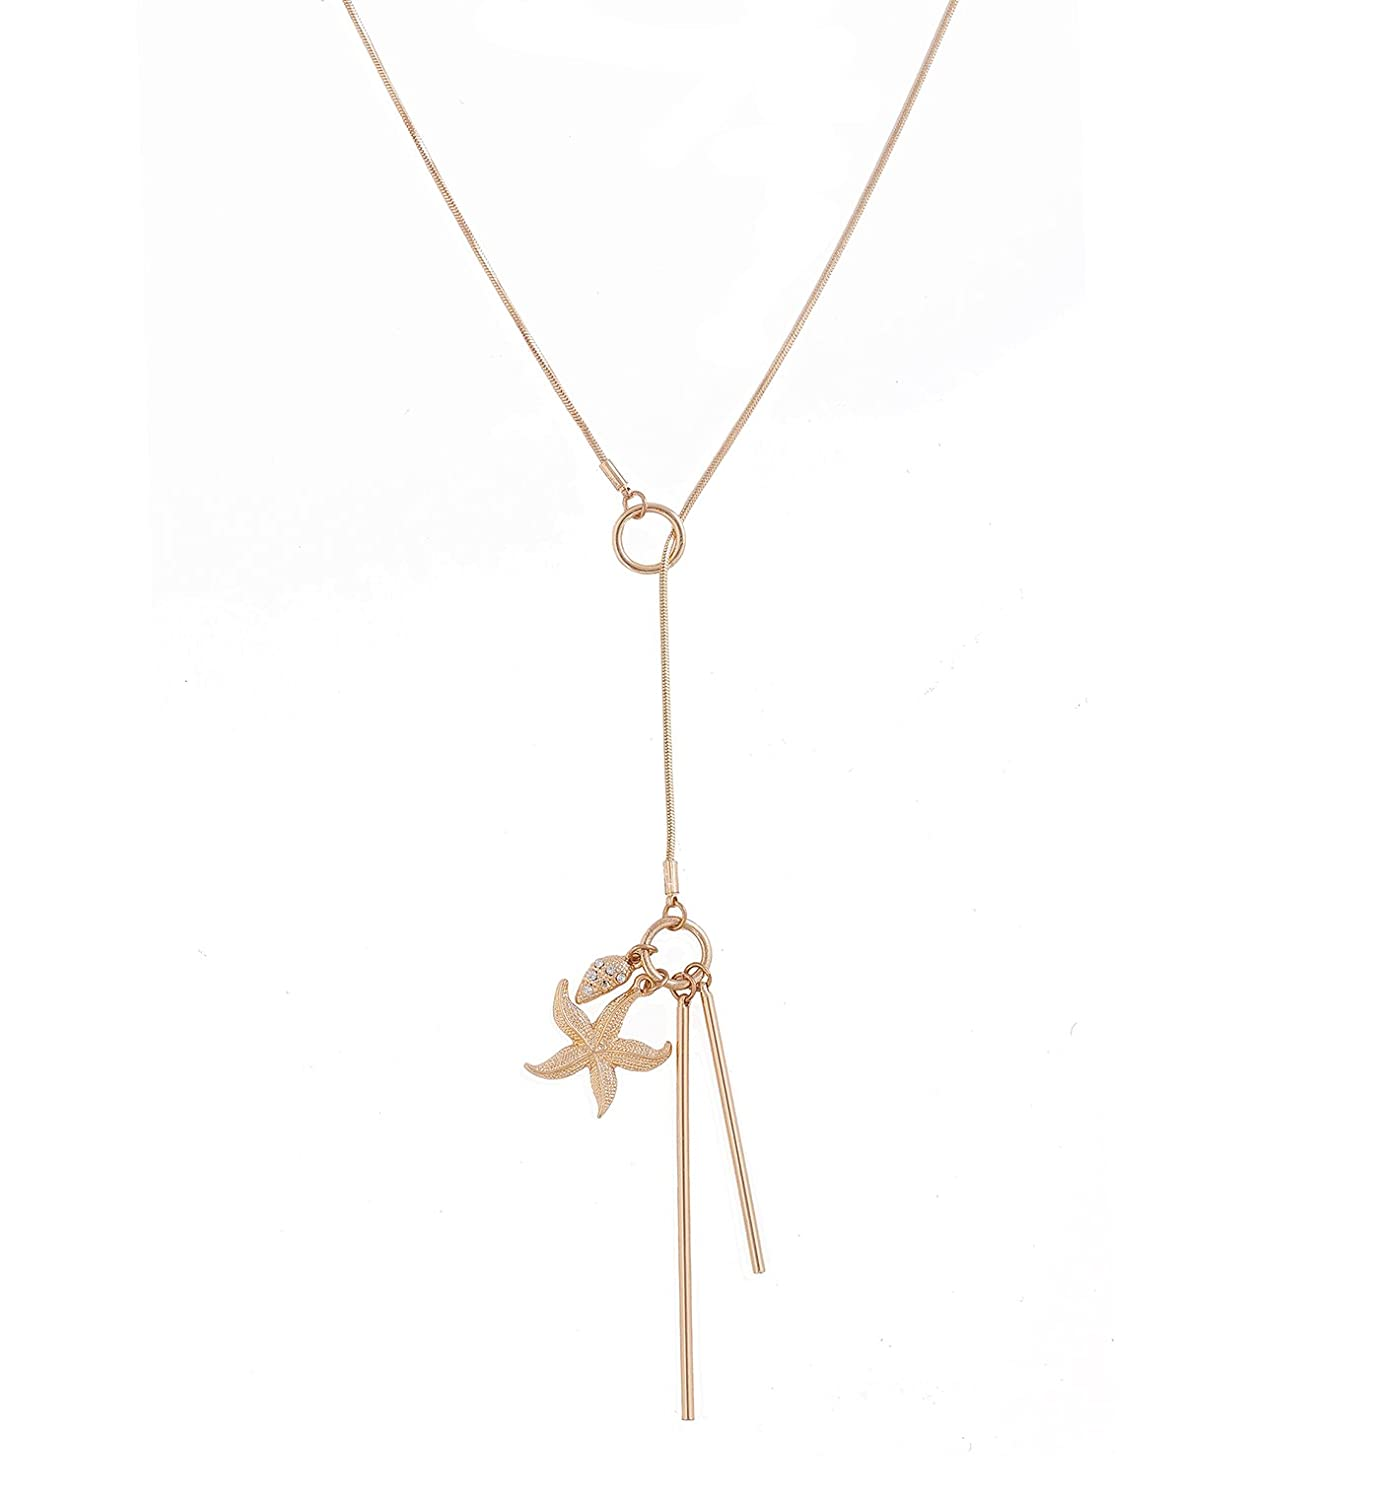 YEYA Lariat Bar Leaf Starfish Pendant Necklace Open Circle Y Necklace Charm Rhinestone Adjustable Long Necklace for Woman Girls B07FGF24TT_US